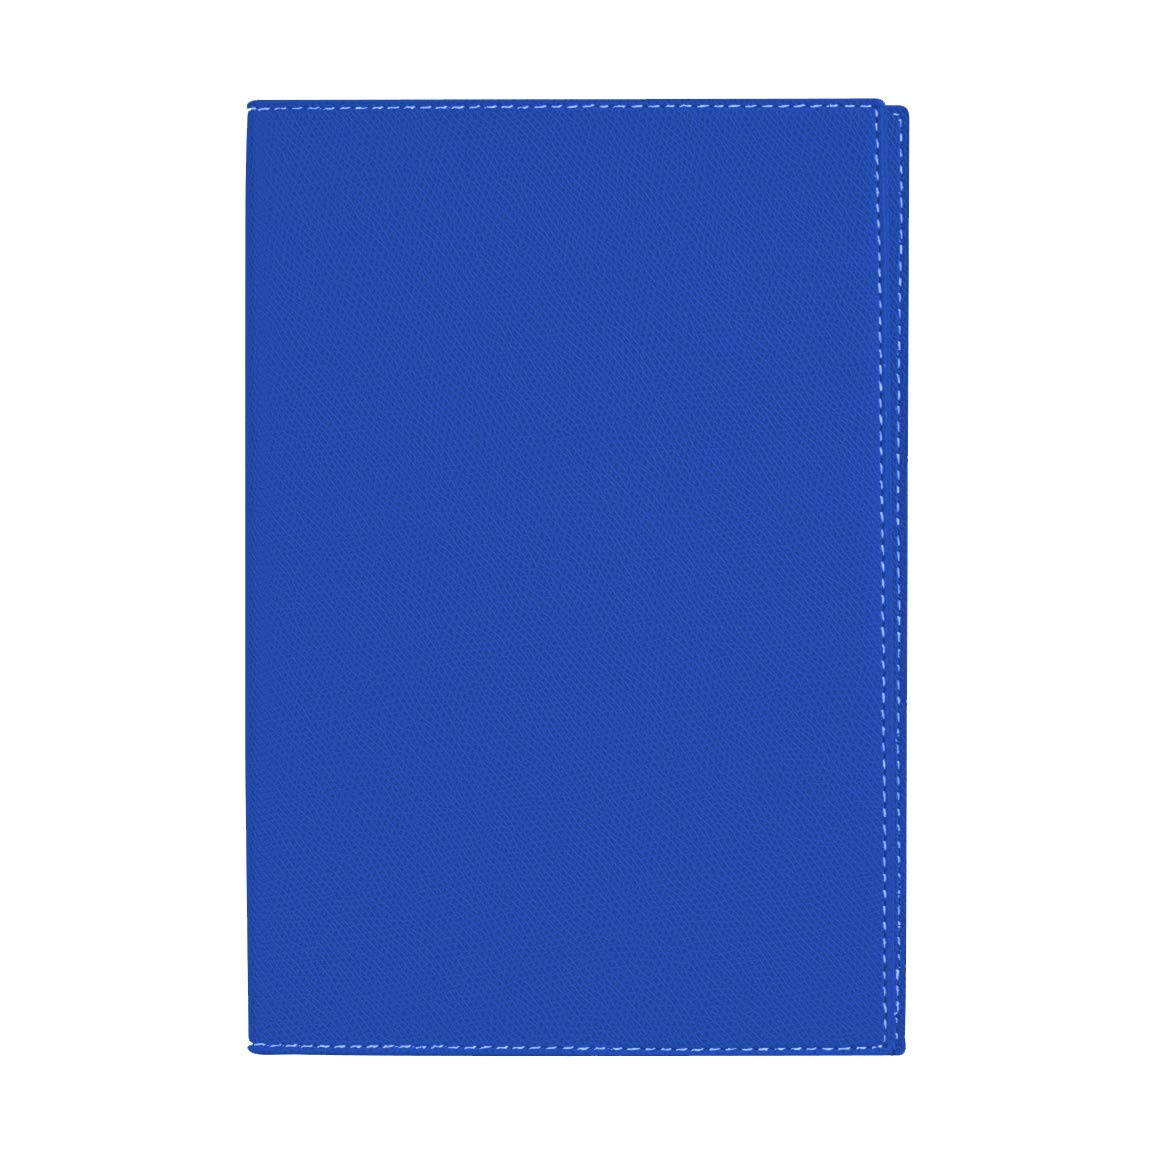 Quo Vadis 2019 Journal 21 Yearly Planner, Club Cover, 5.25 by 8.25 inches, Blau B07DW93K8H  | Ästhetisches Aussehen